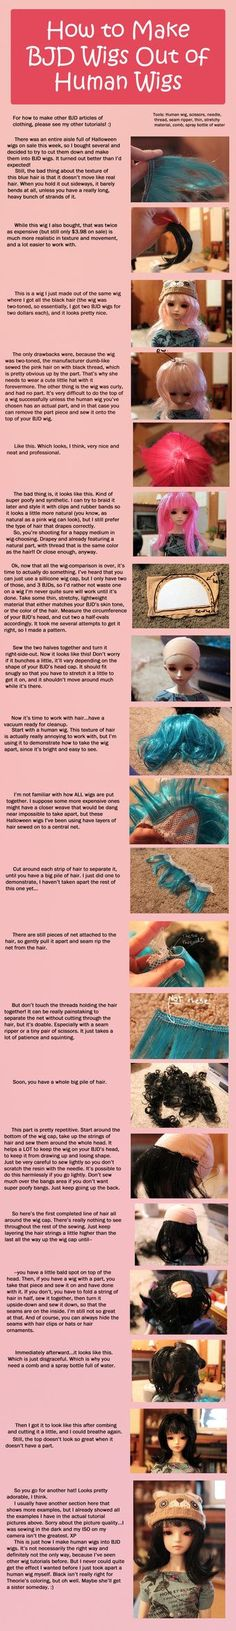 How to Make BJD Wigs out of Human Wigs by RodianAngel on deviantART